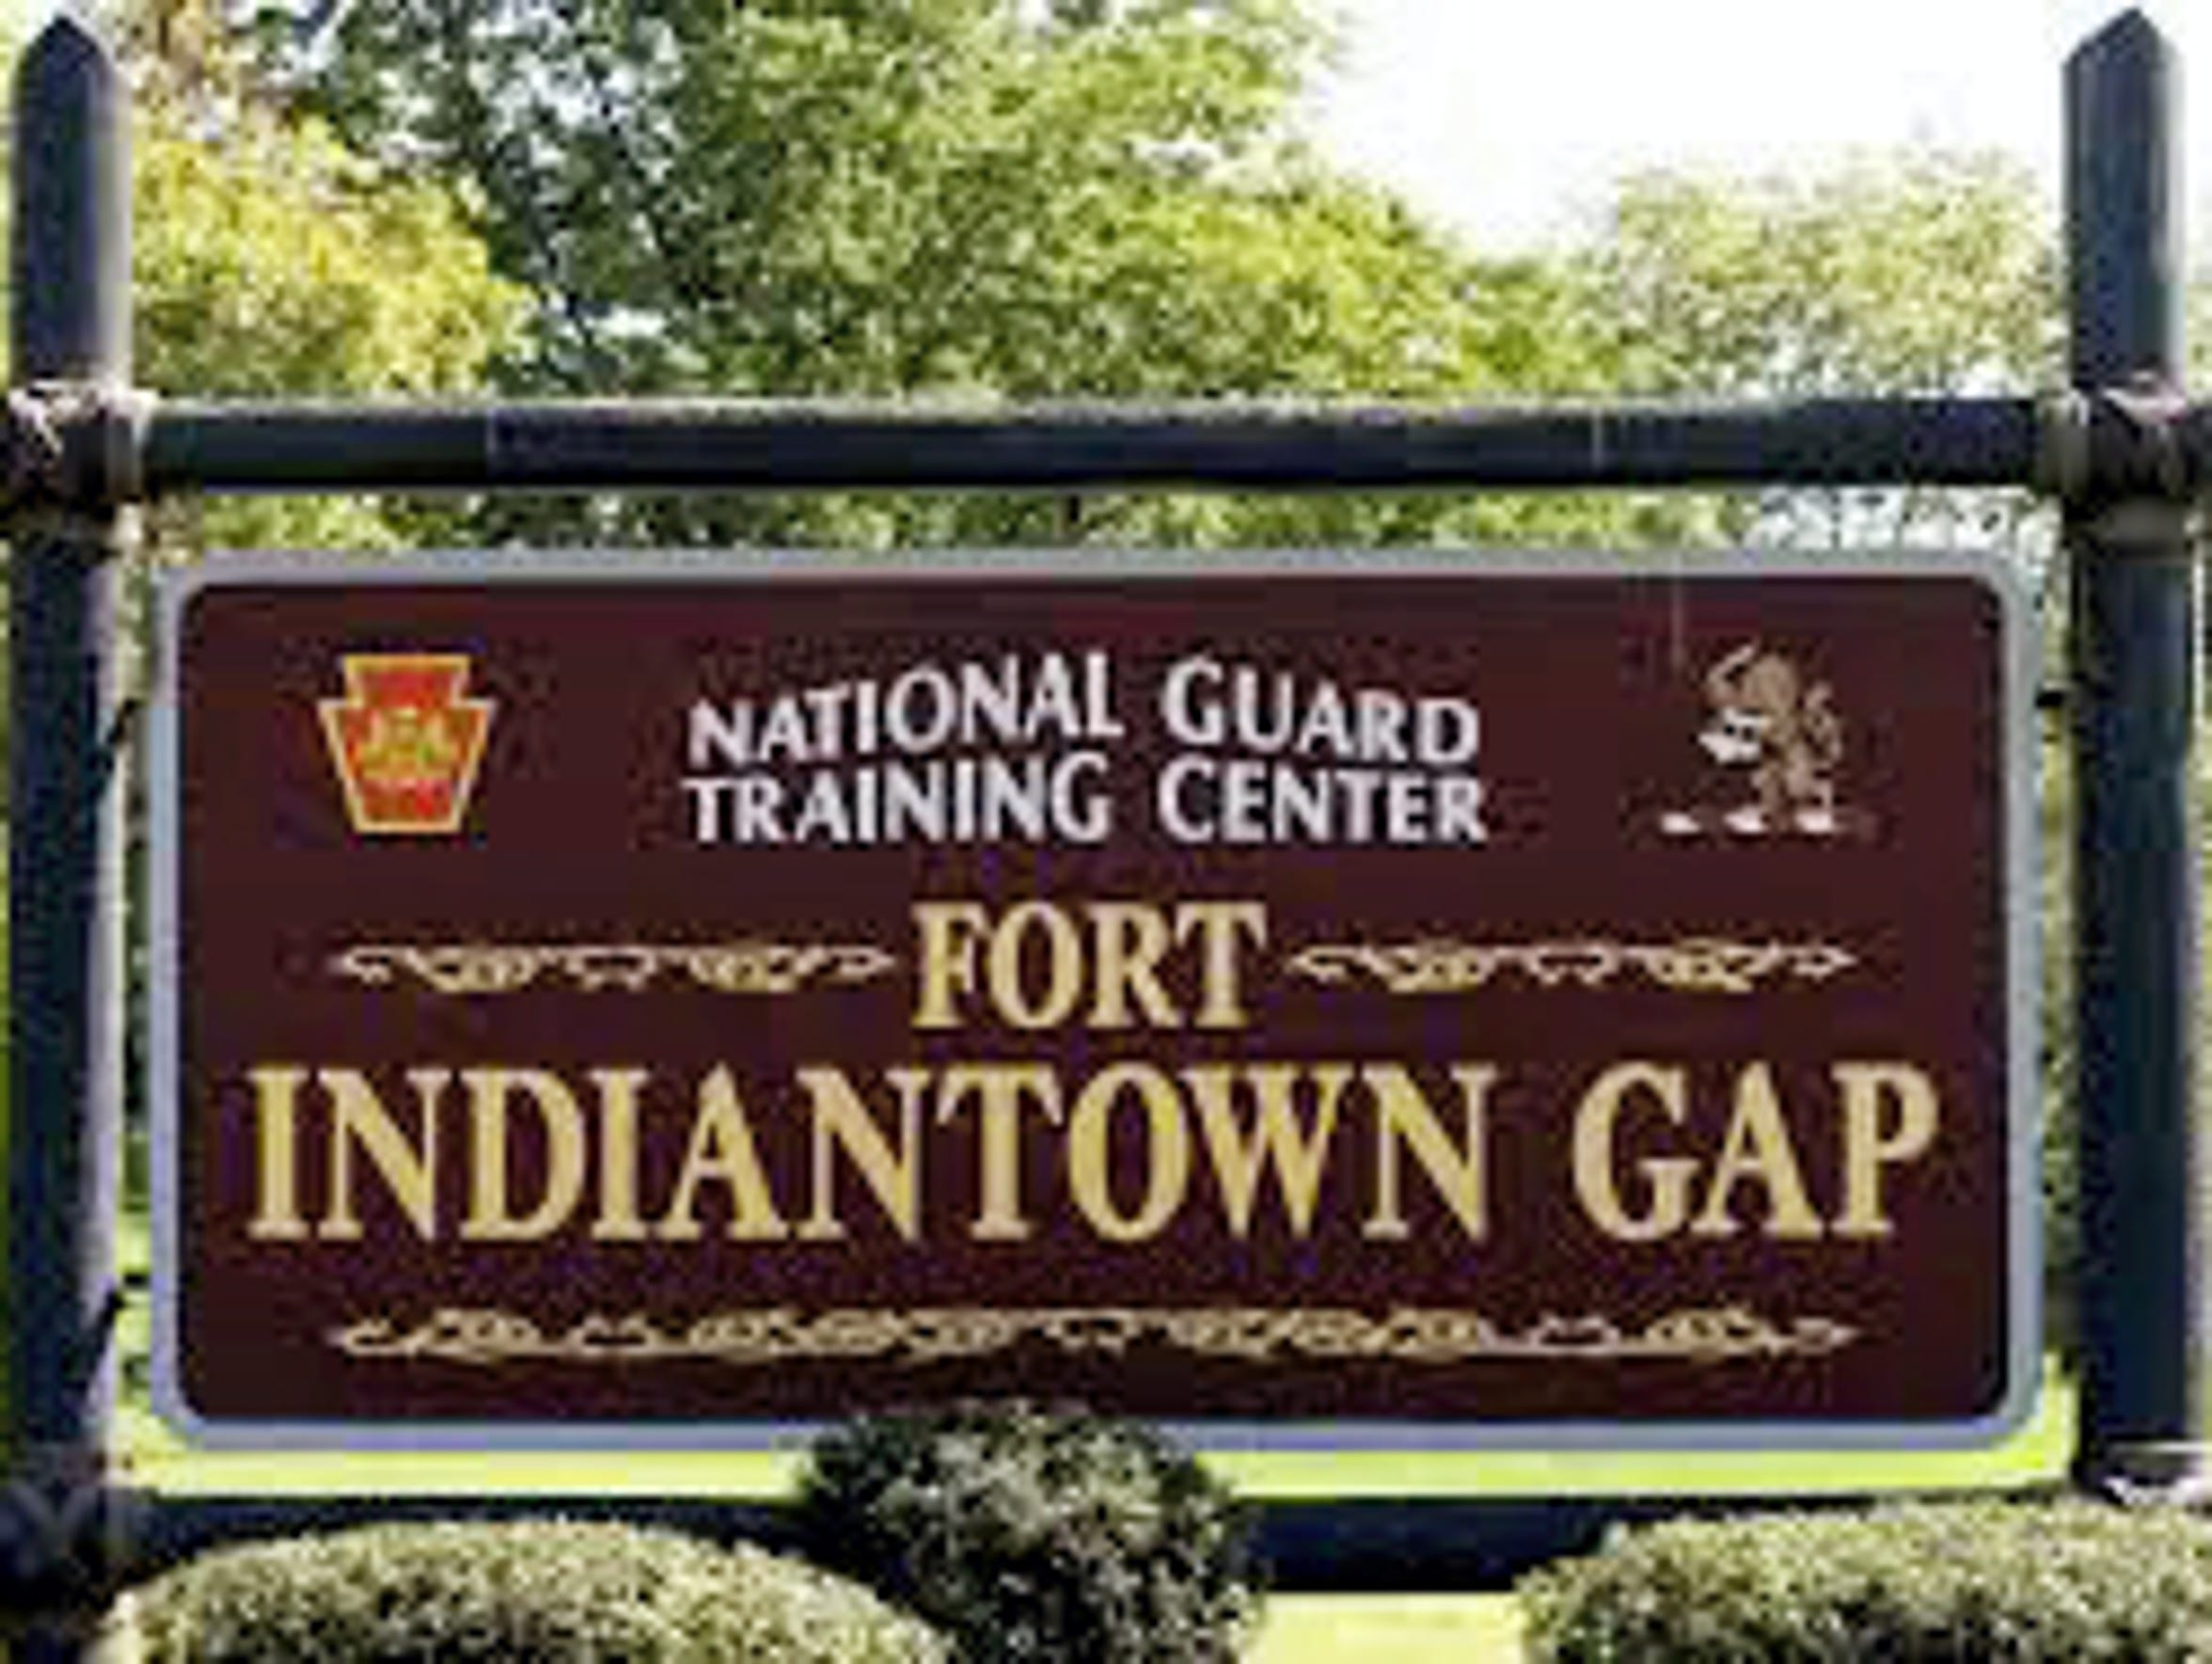 Fort Indiantown Gap